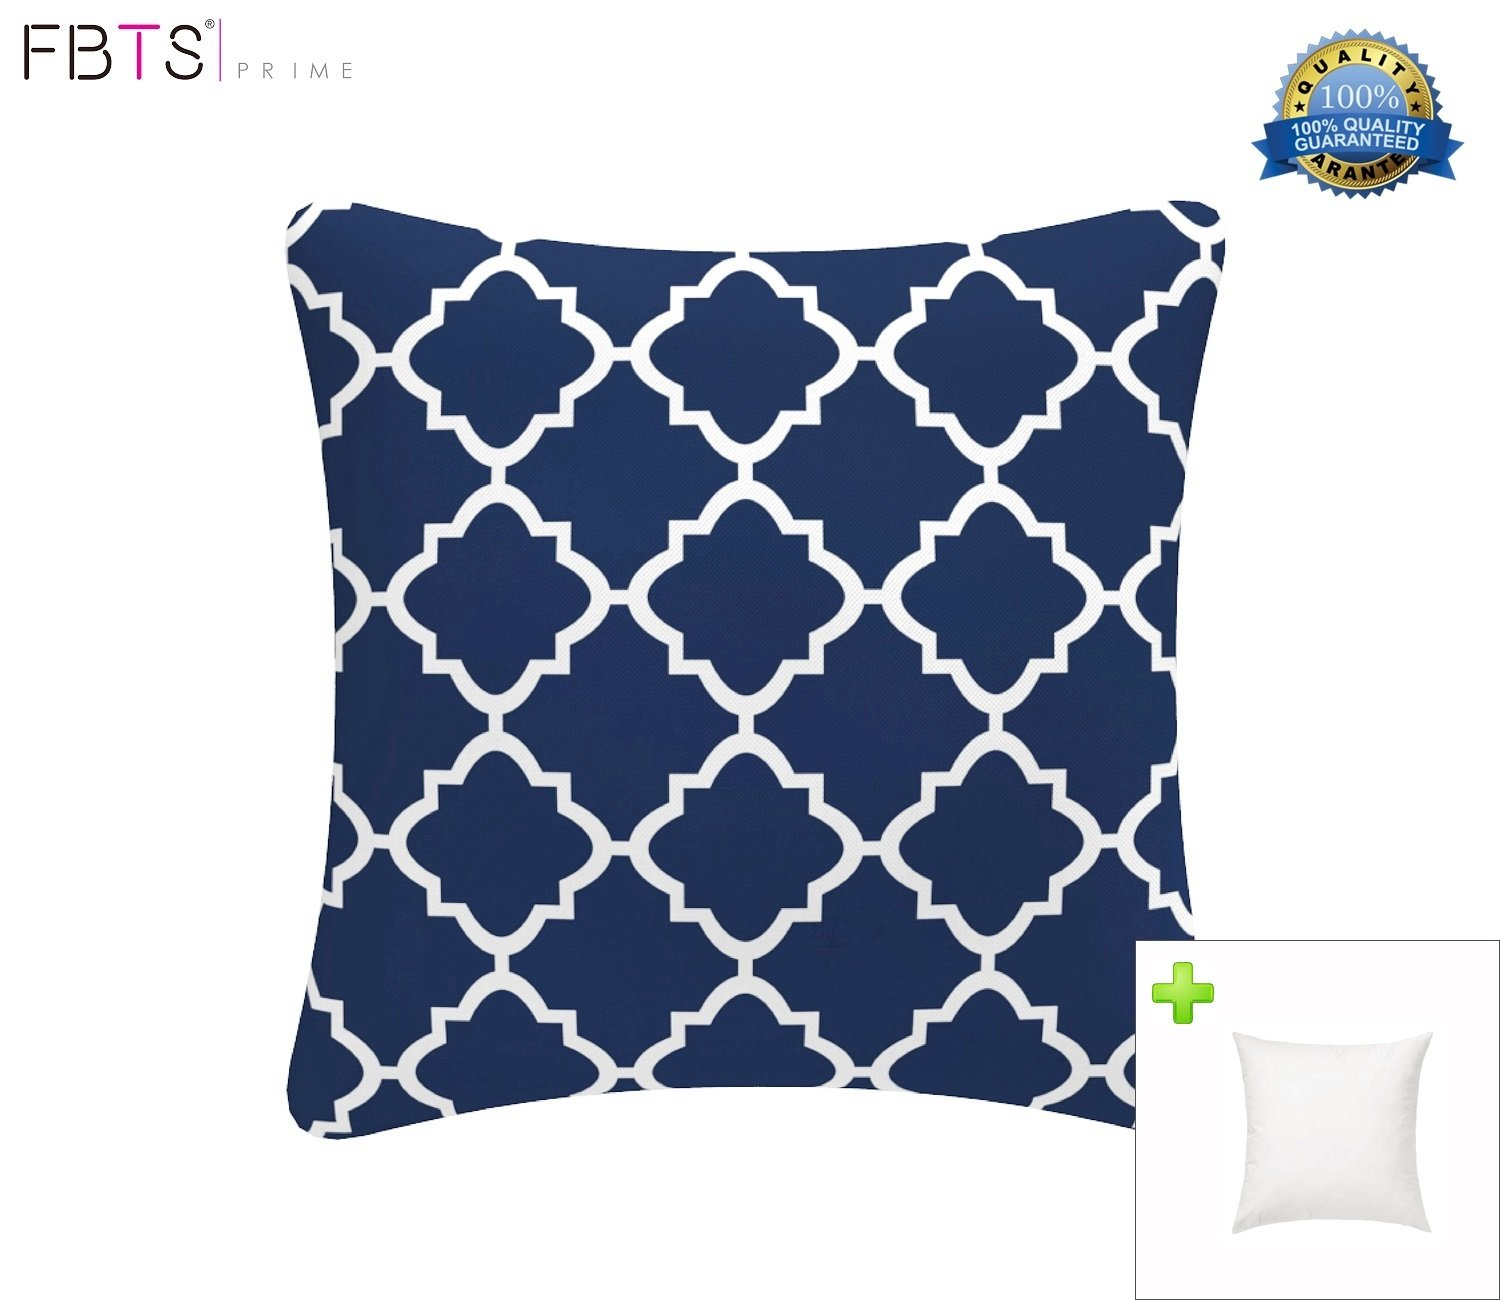 FBTS Prime Outdoor Decorative Pillows with Insert Navy Patio Accent Pillows Throw Covers 18x18 Inches Square Patio Cushions for Couch Bed Sofa Patio Furniture by FBTS Prime